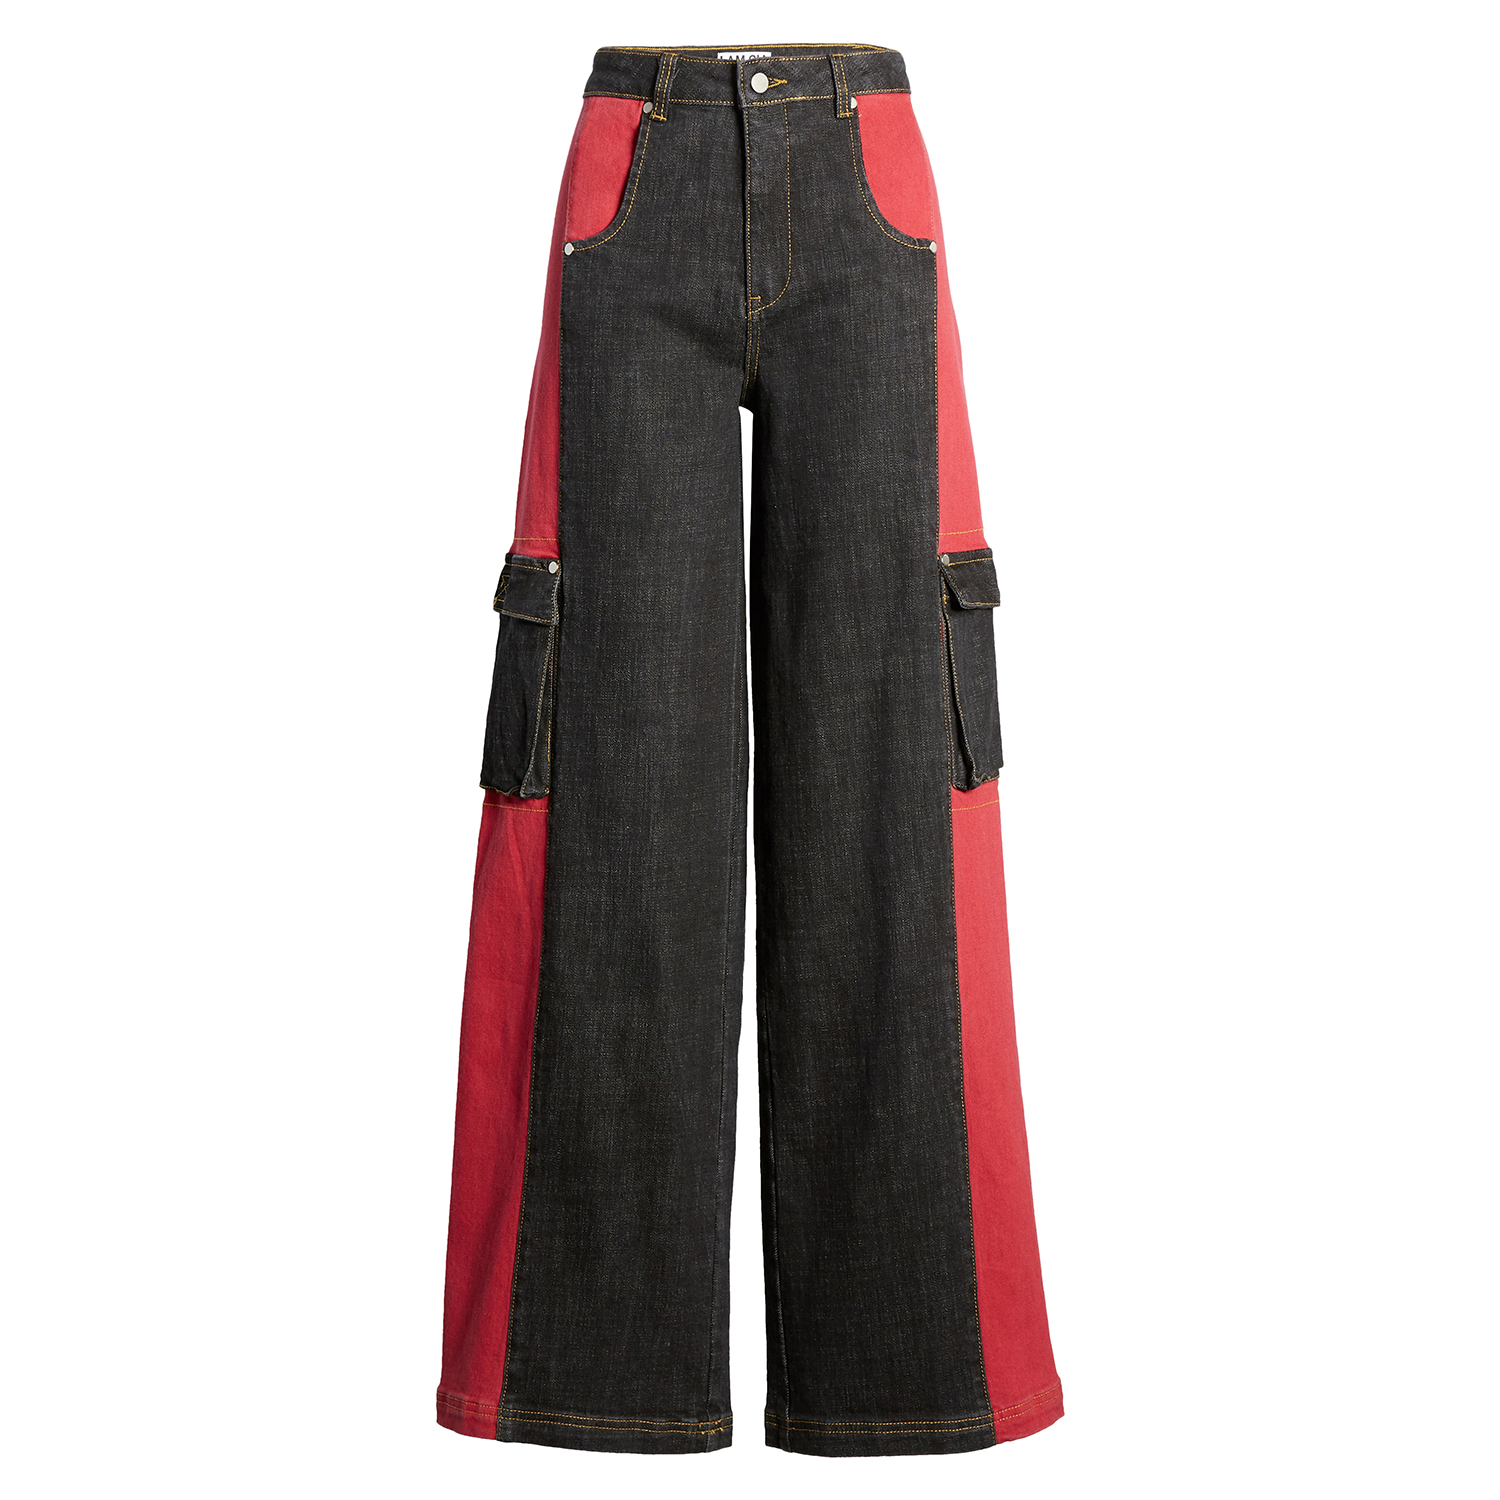 I.AM.GIA Bessi High Waist Wide Leg Cargo Jeans